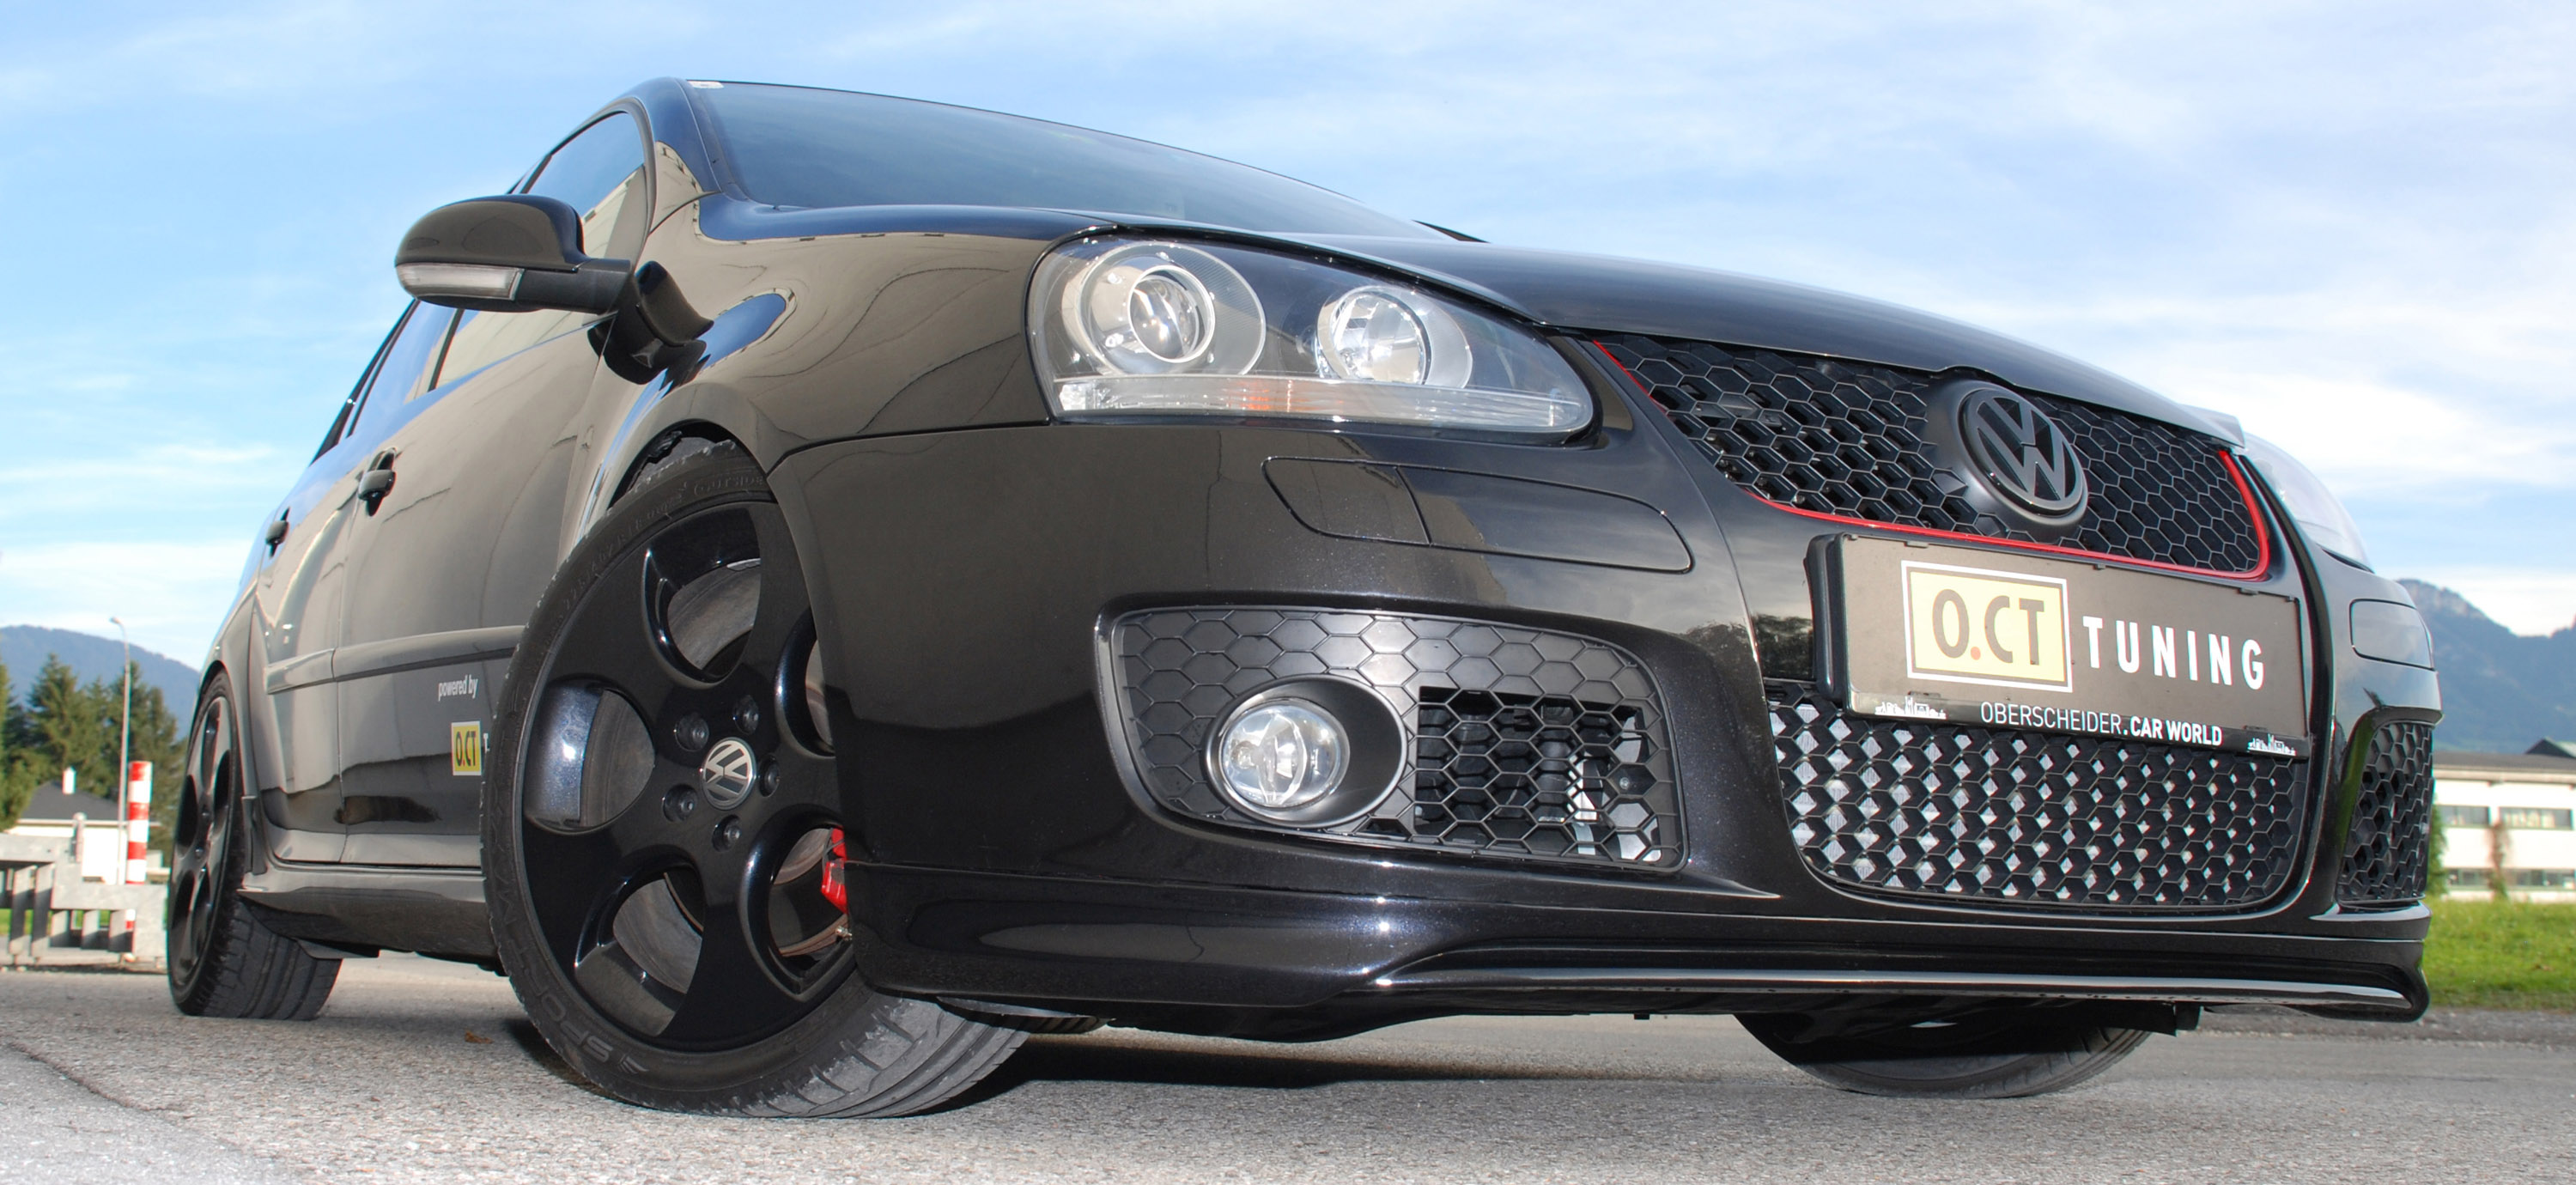 Oct Volkswagen Golf V Gti Edition 30 Picture 77343